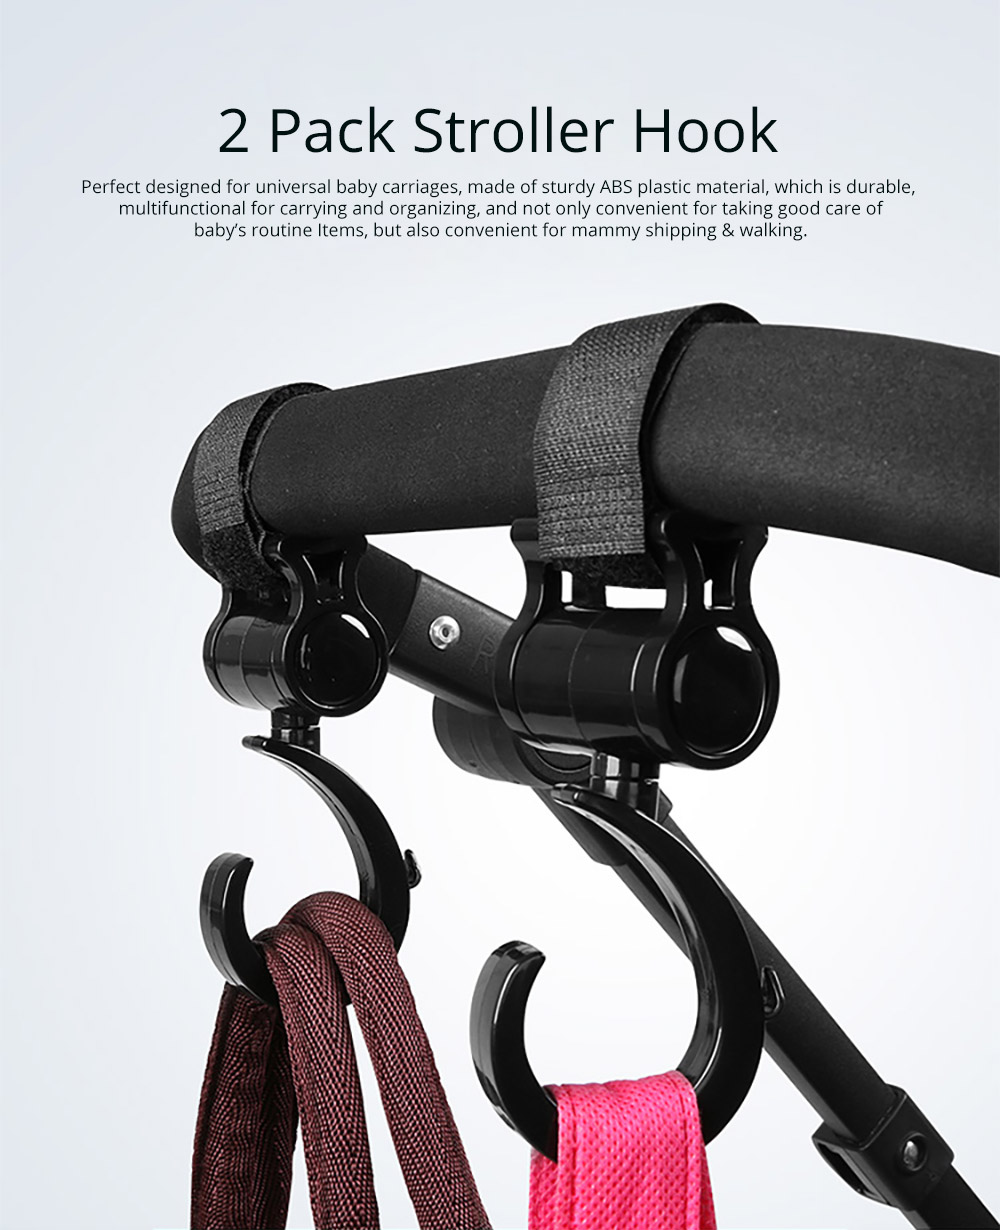 Universal Stroller Hanger Oversized Hook Compatible for Shipping Bags, Baby Carriages, Stroller Accessories 2 Pack Durable Stroller Organizer Clip for Shipping or Walking 5